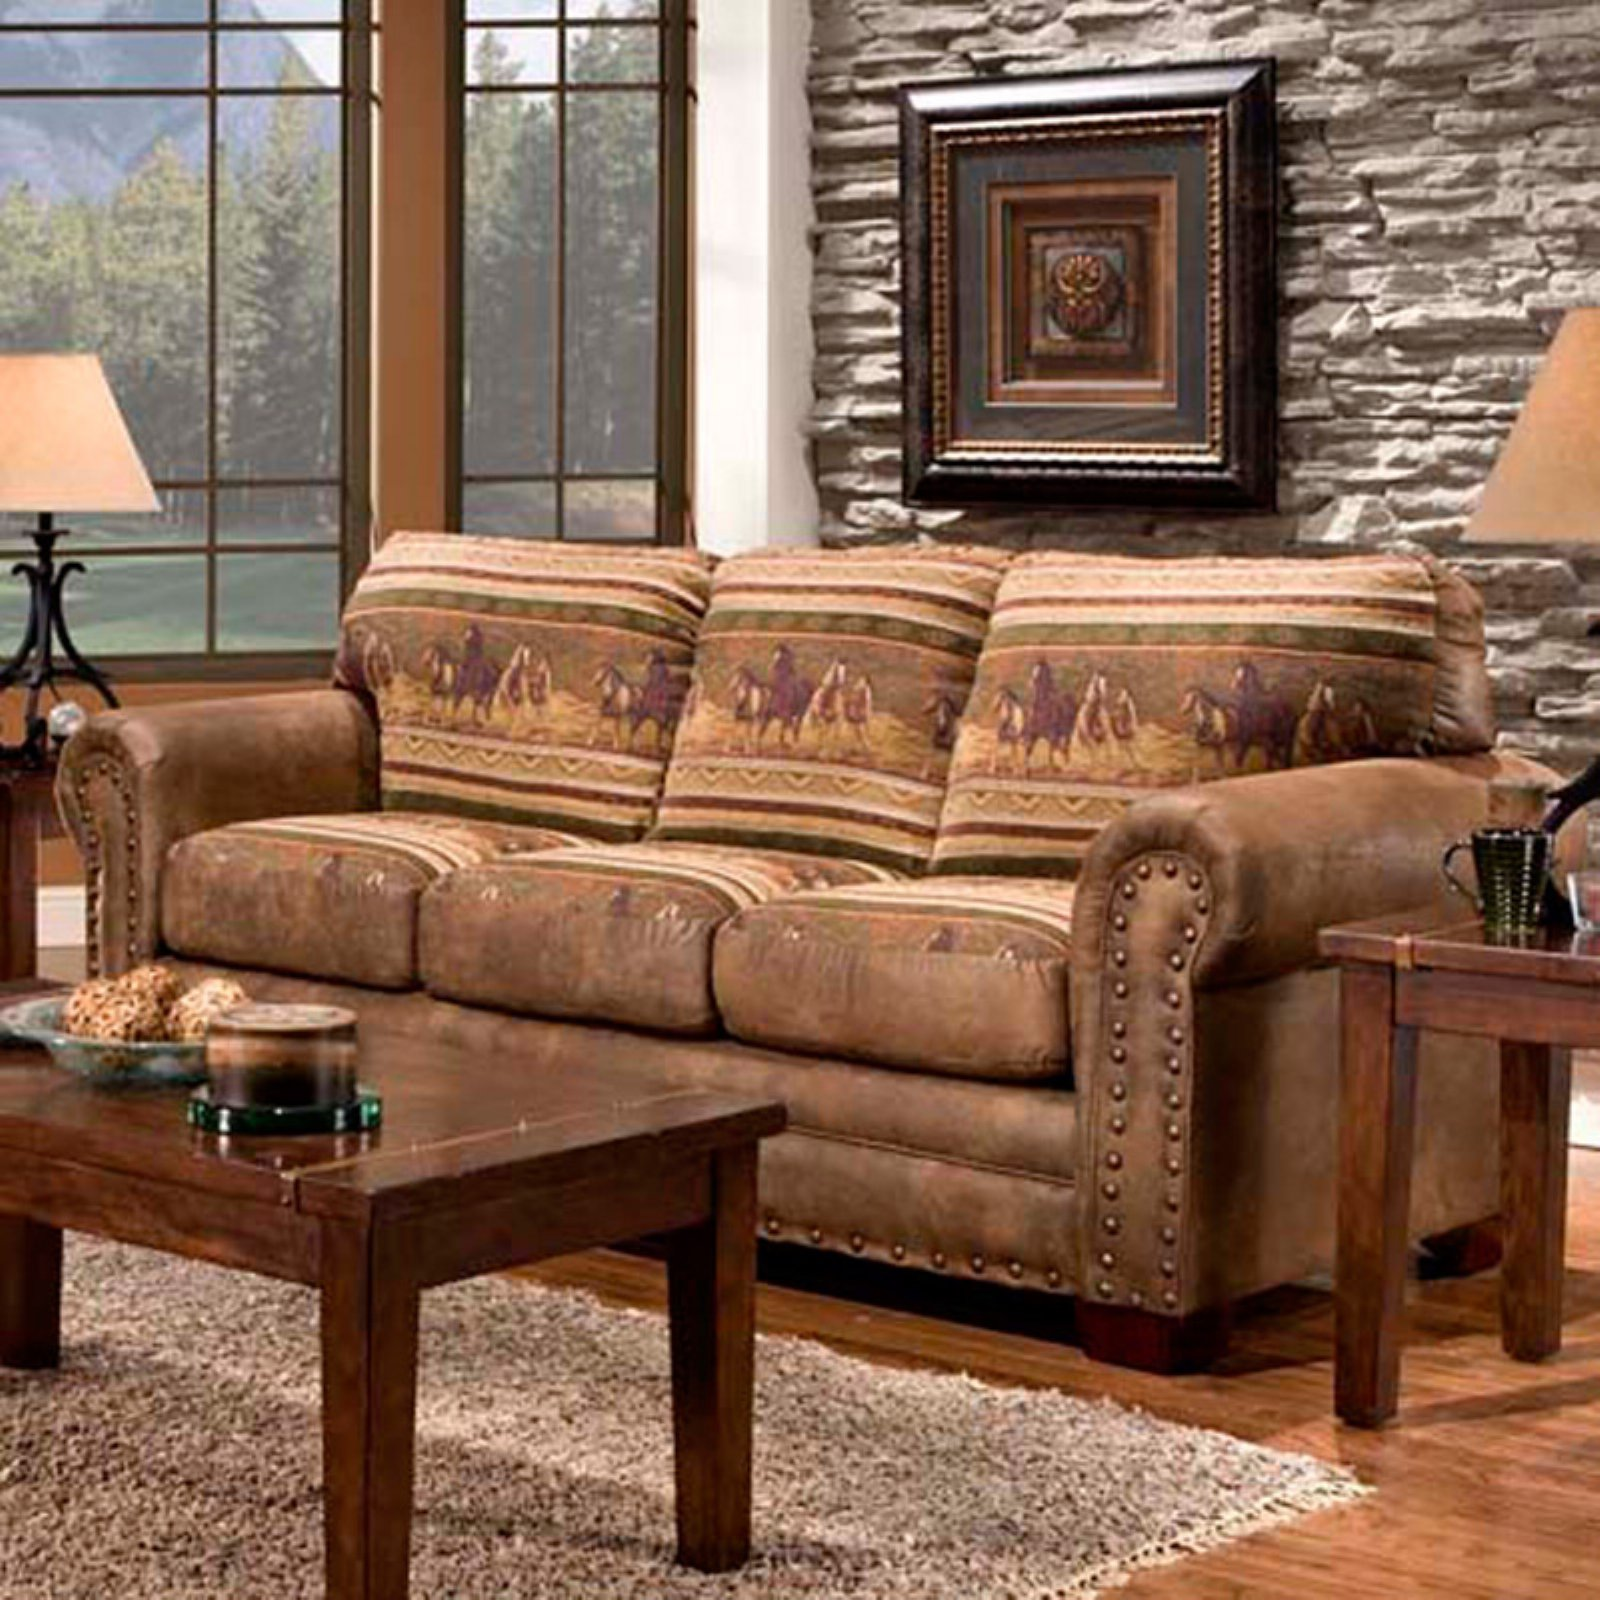 American Furuniture Classics Wild Horses Sleeper Sofa by American Furniture Classics